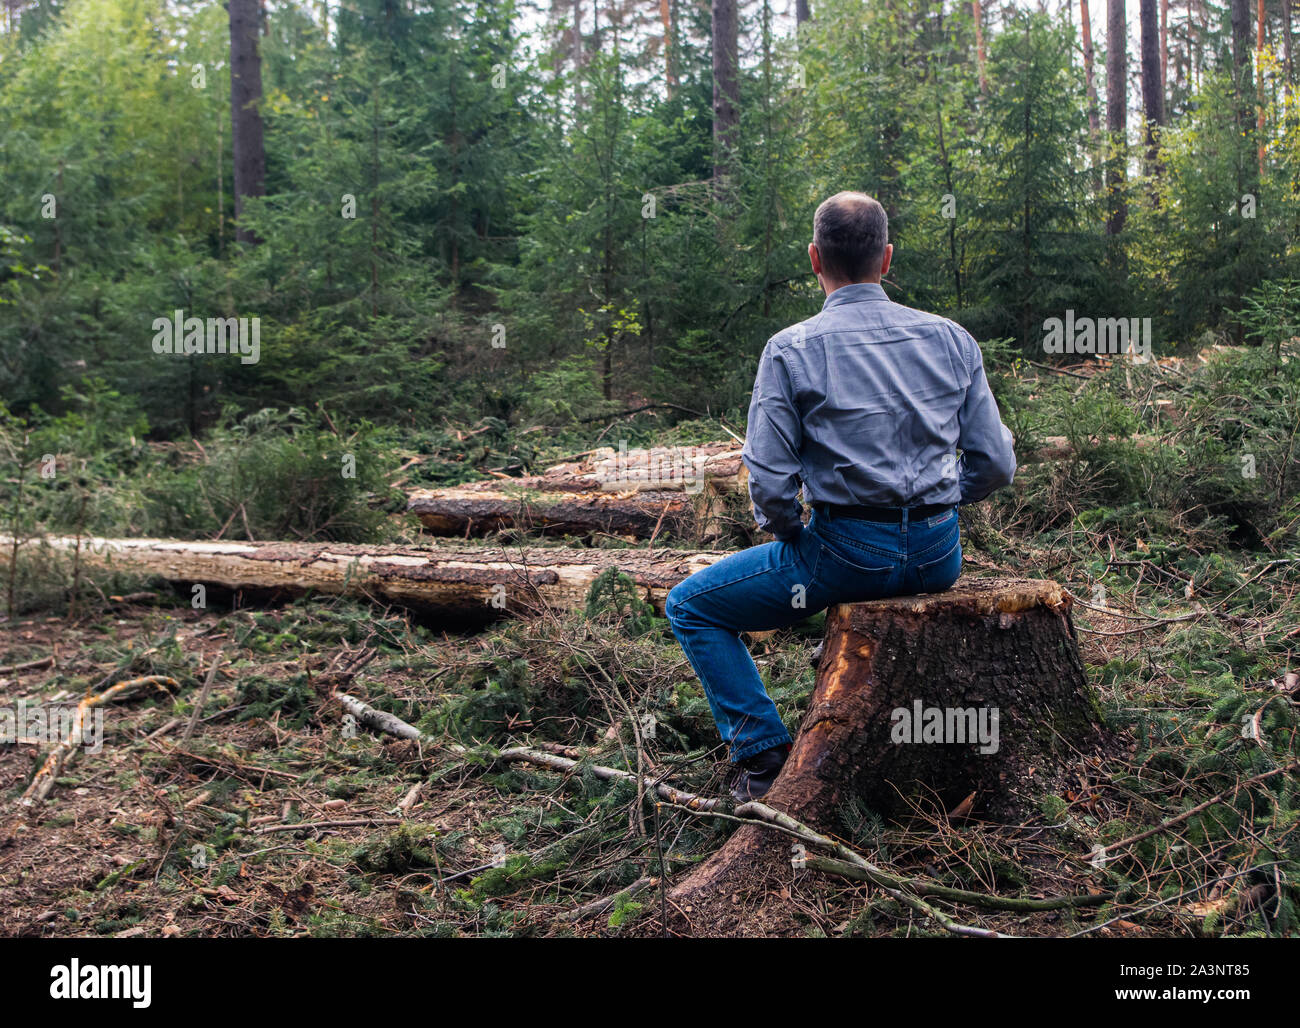 rear view of a man in shirt and jeans looking at felled trees sitting on tree stump Stock Photo